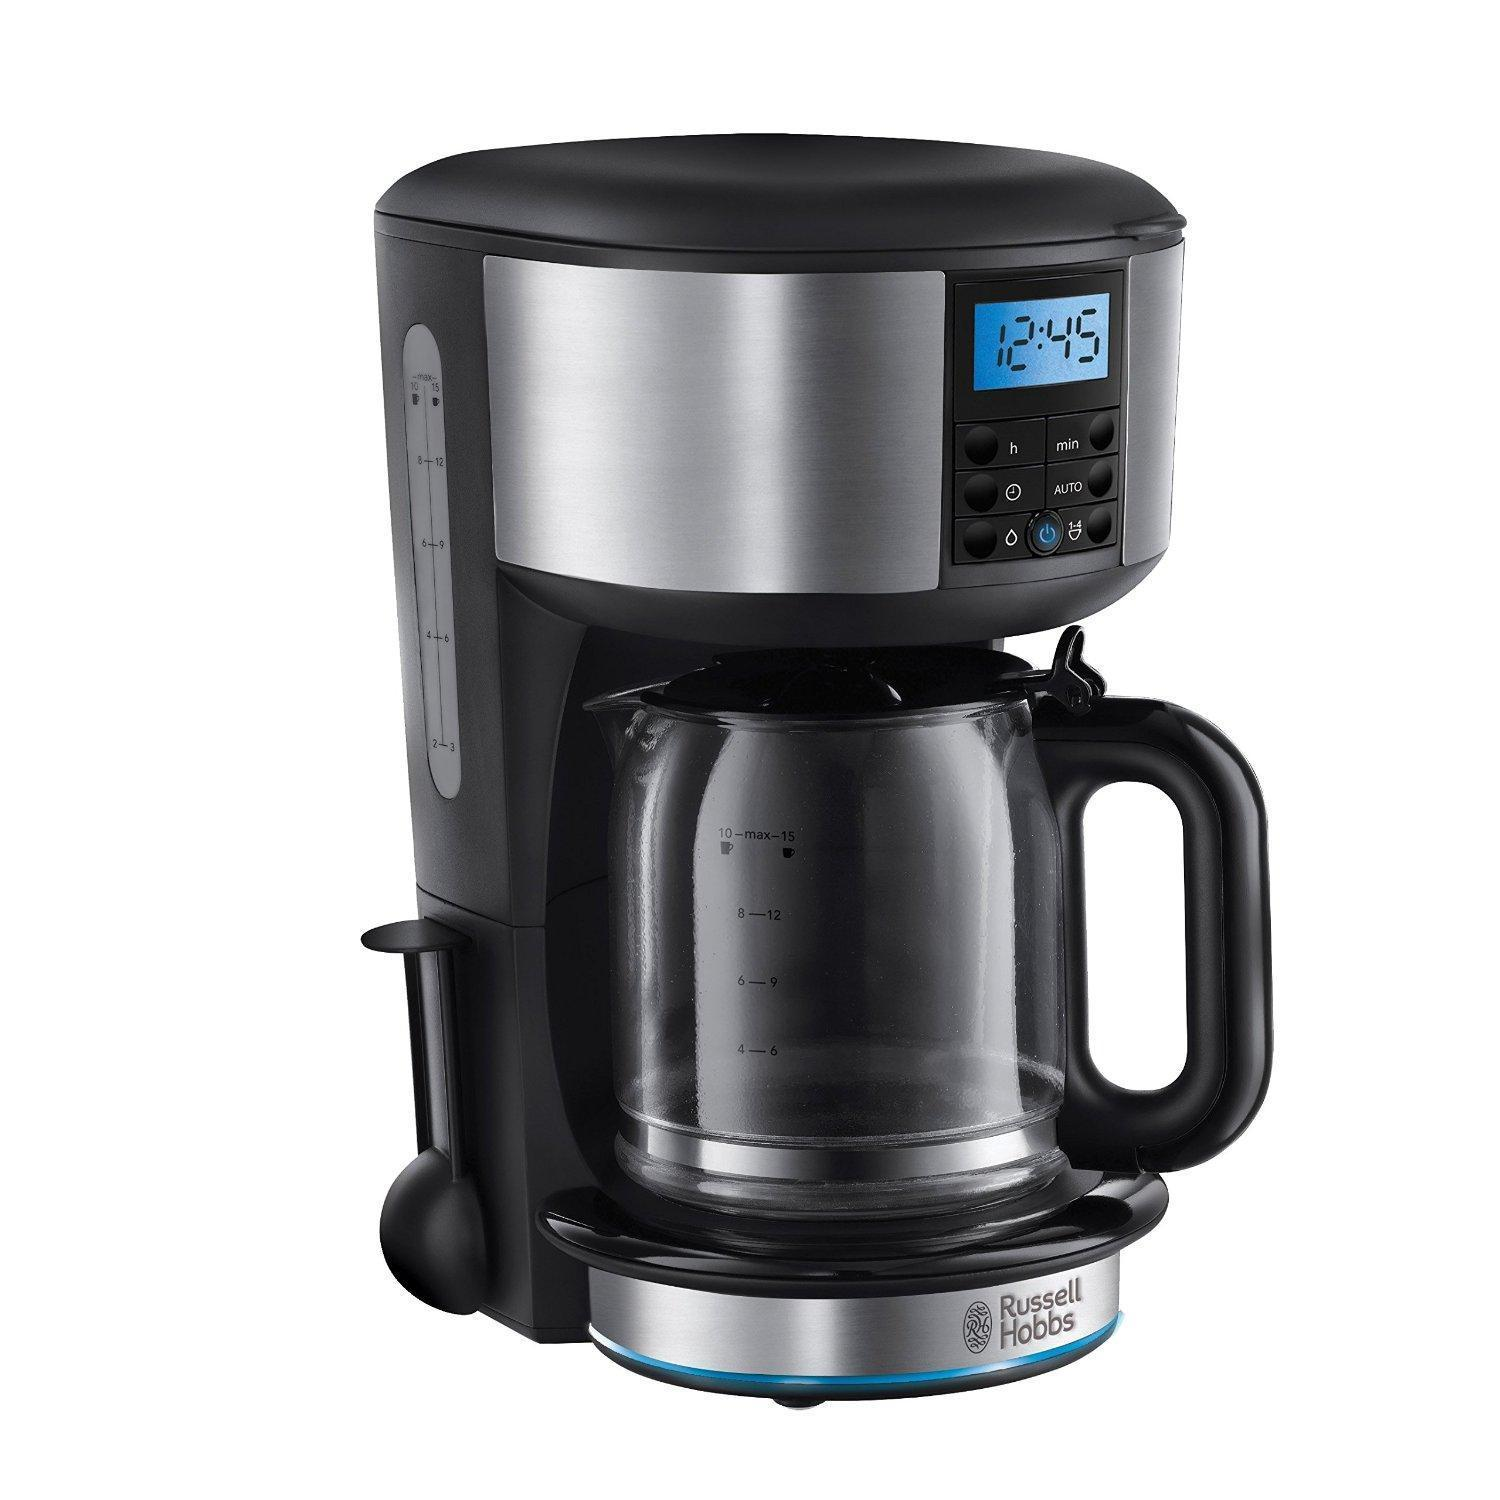 Russell Hobbs - 20680 - Cafetière programmable BUCKINGHAM